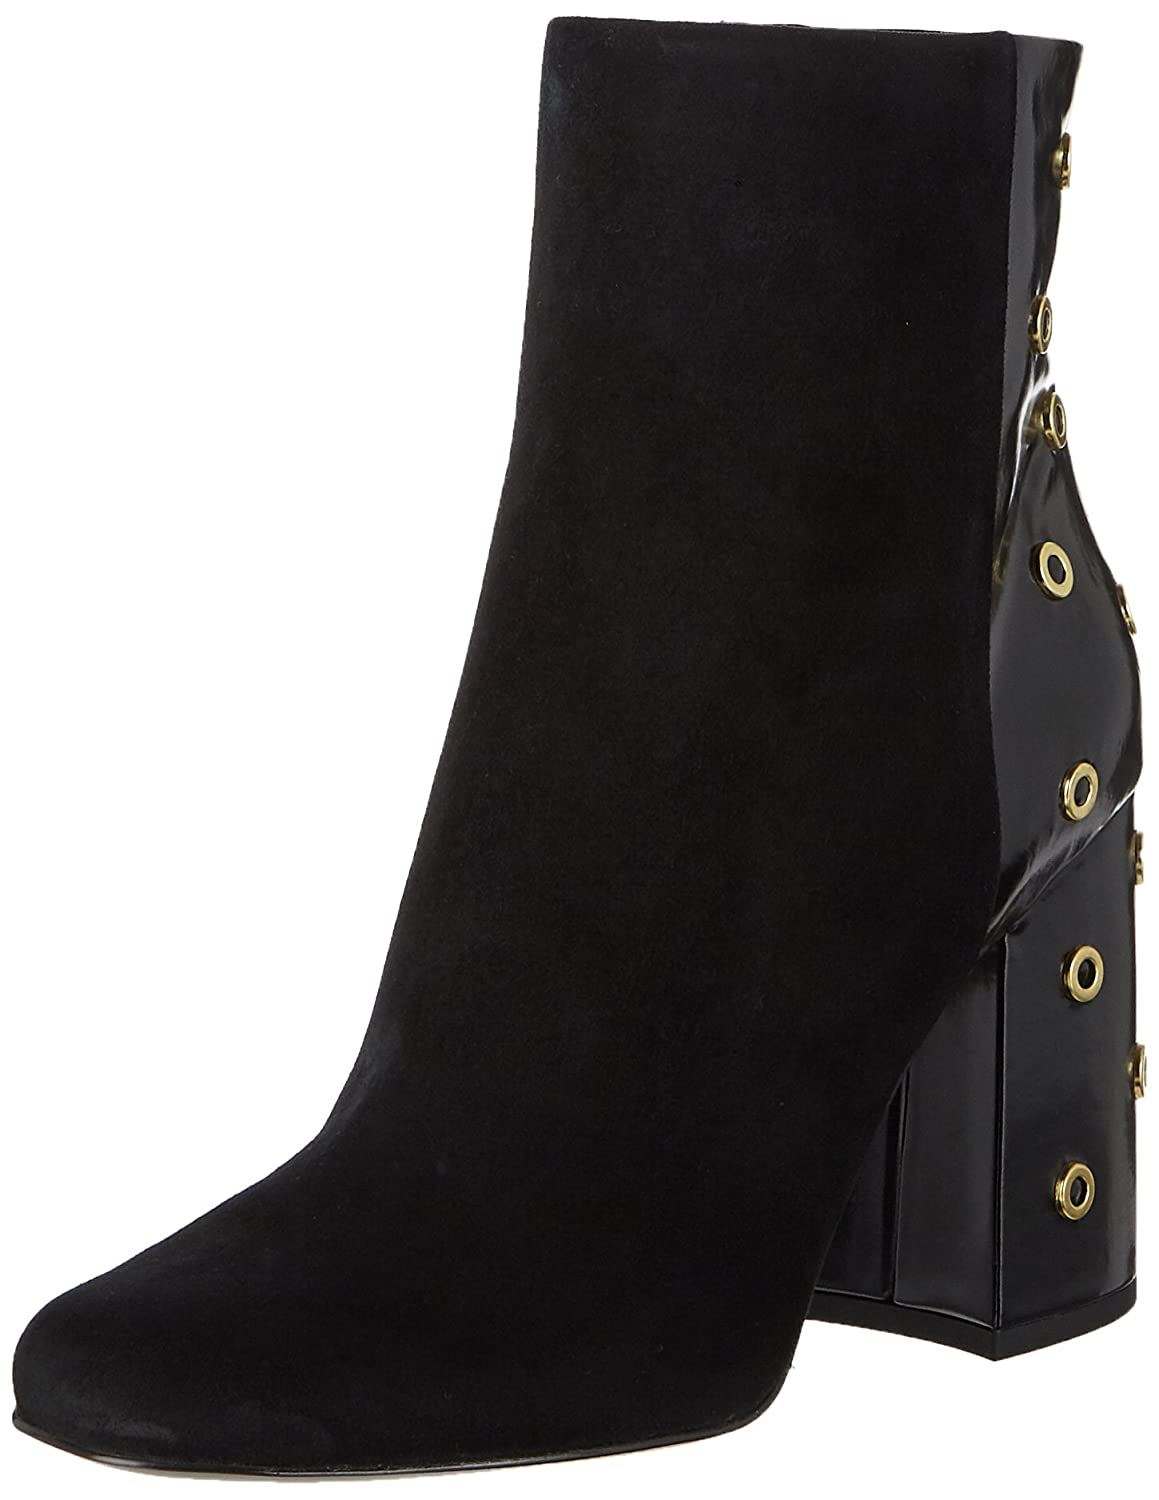 Nine West Women's Justin Suede Ankle Boots Boot B0059M9BRW Boots Ankle b74c4e